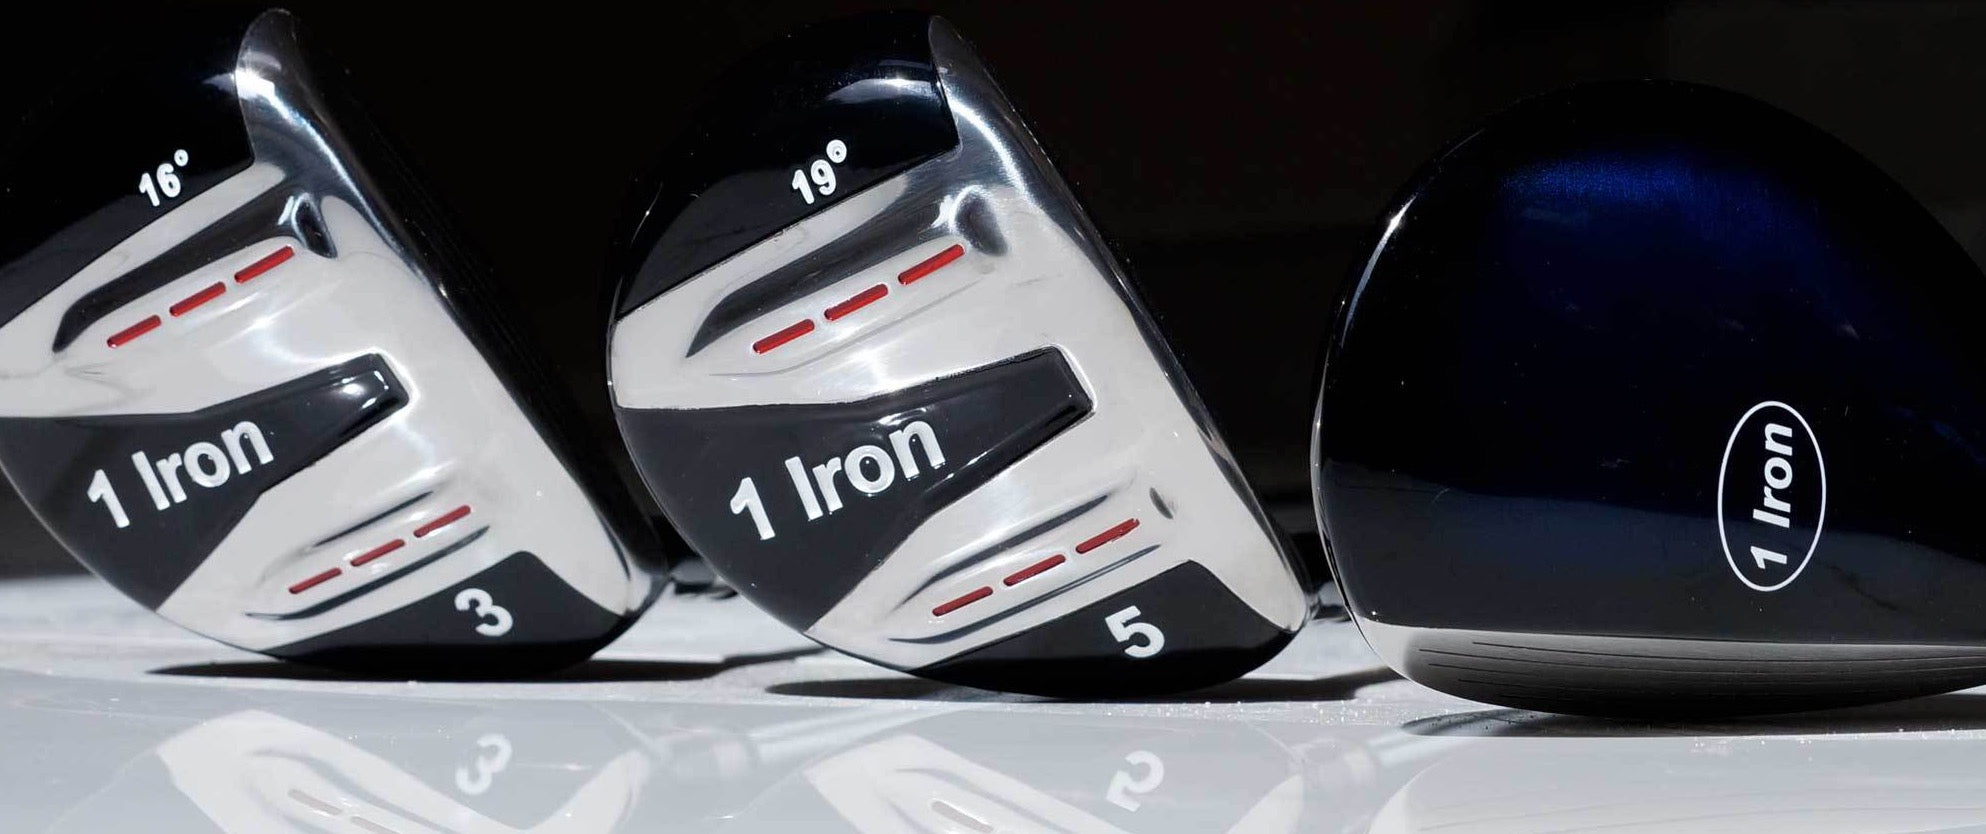 Single-Length Low-Profile Fairway Woods - Now Available!